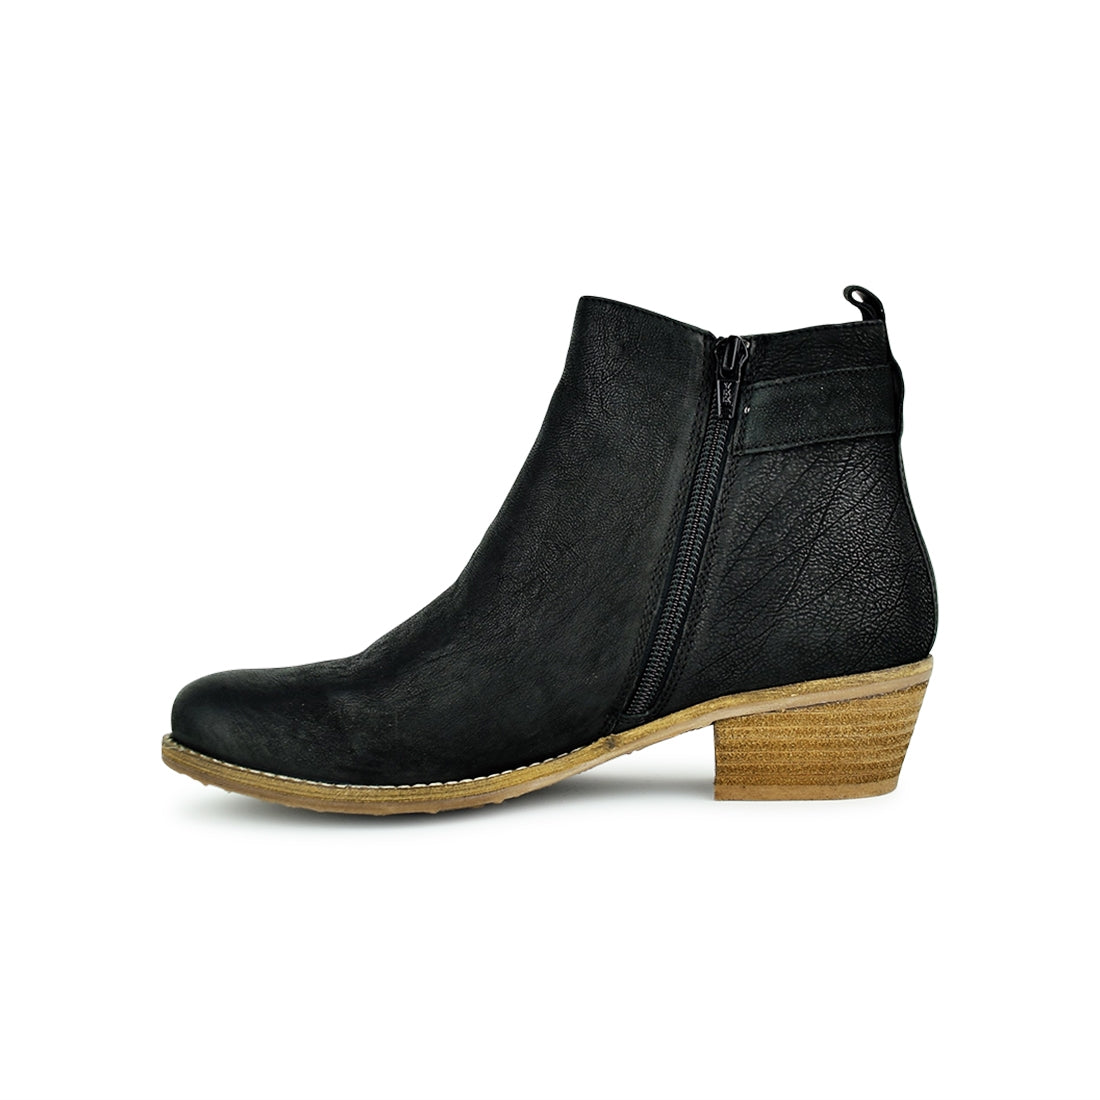 MONTANO - Martini Marco Ankle Boots Black